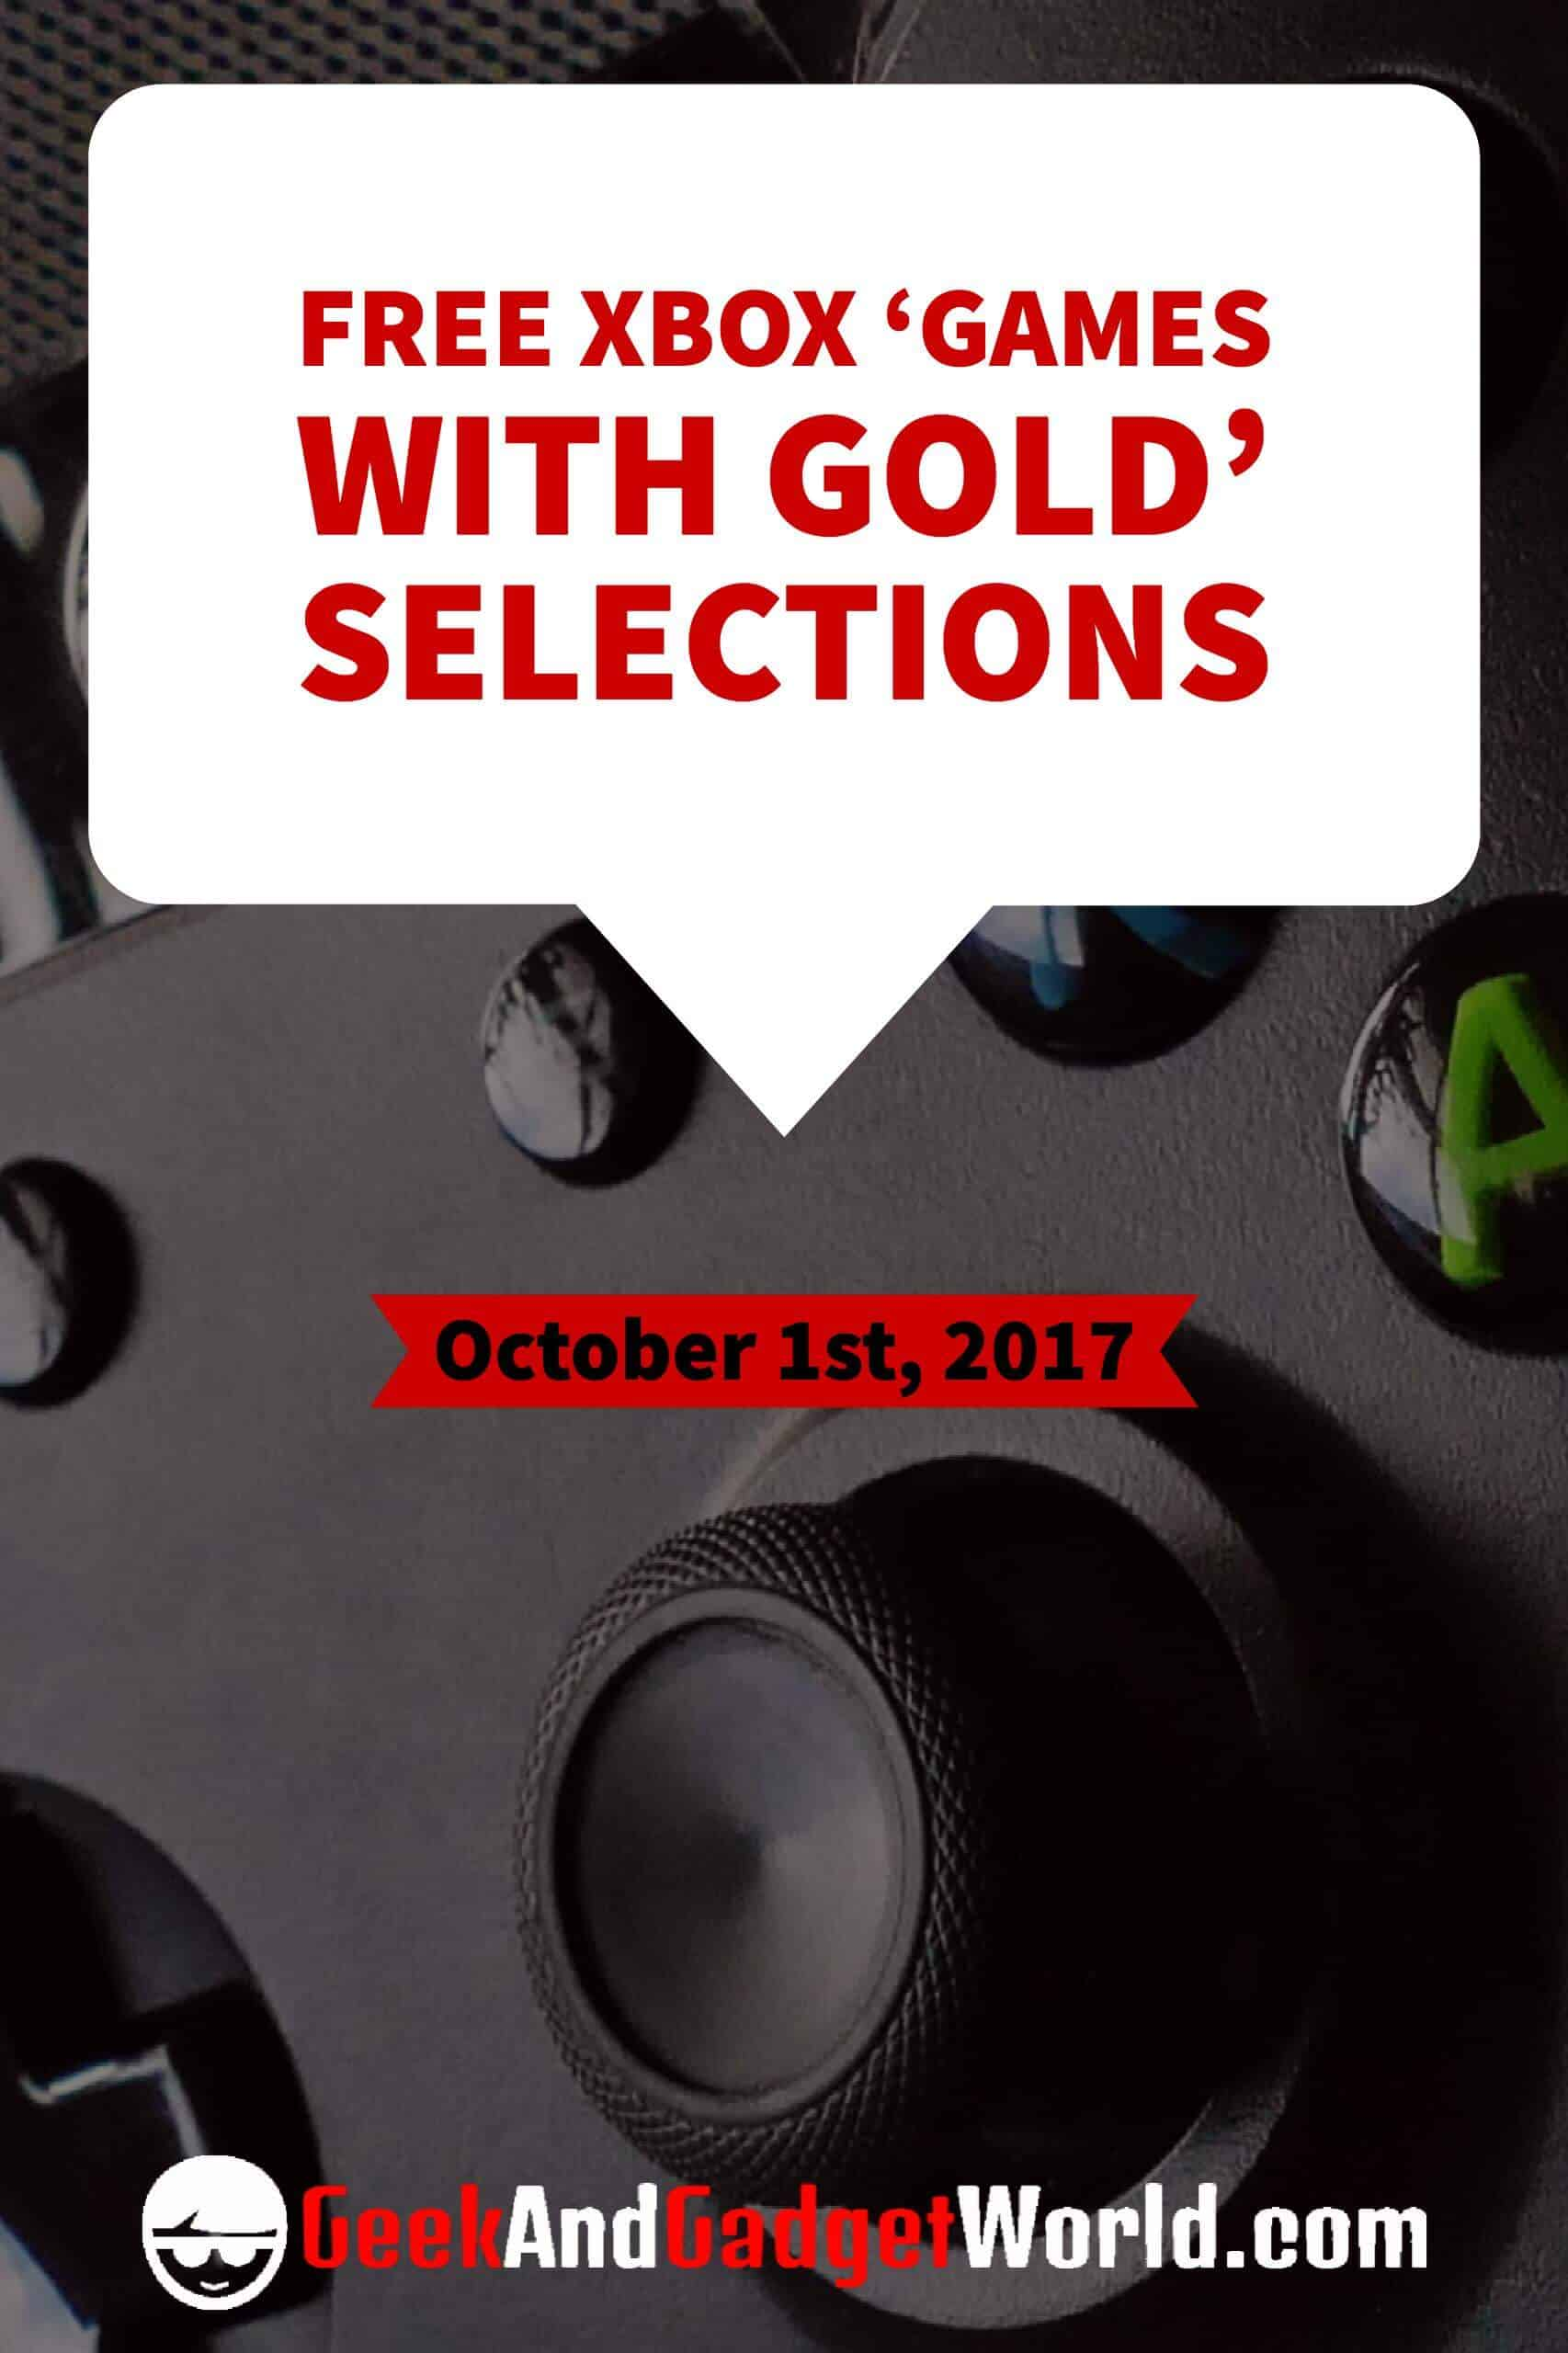 October 1st 2017 Free Xbox Games With Gold Pinterest